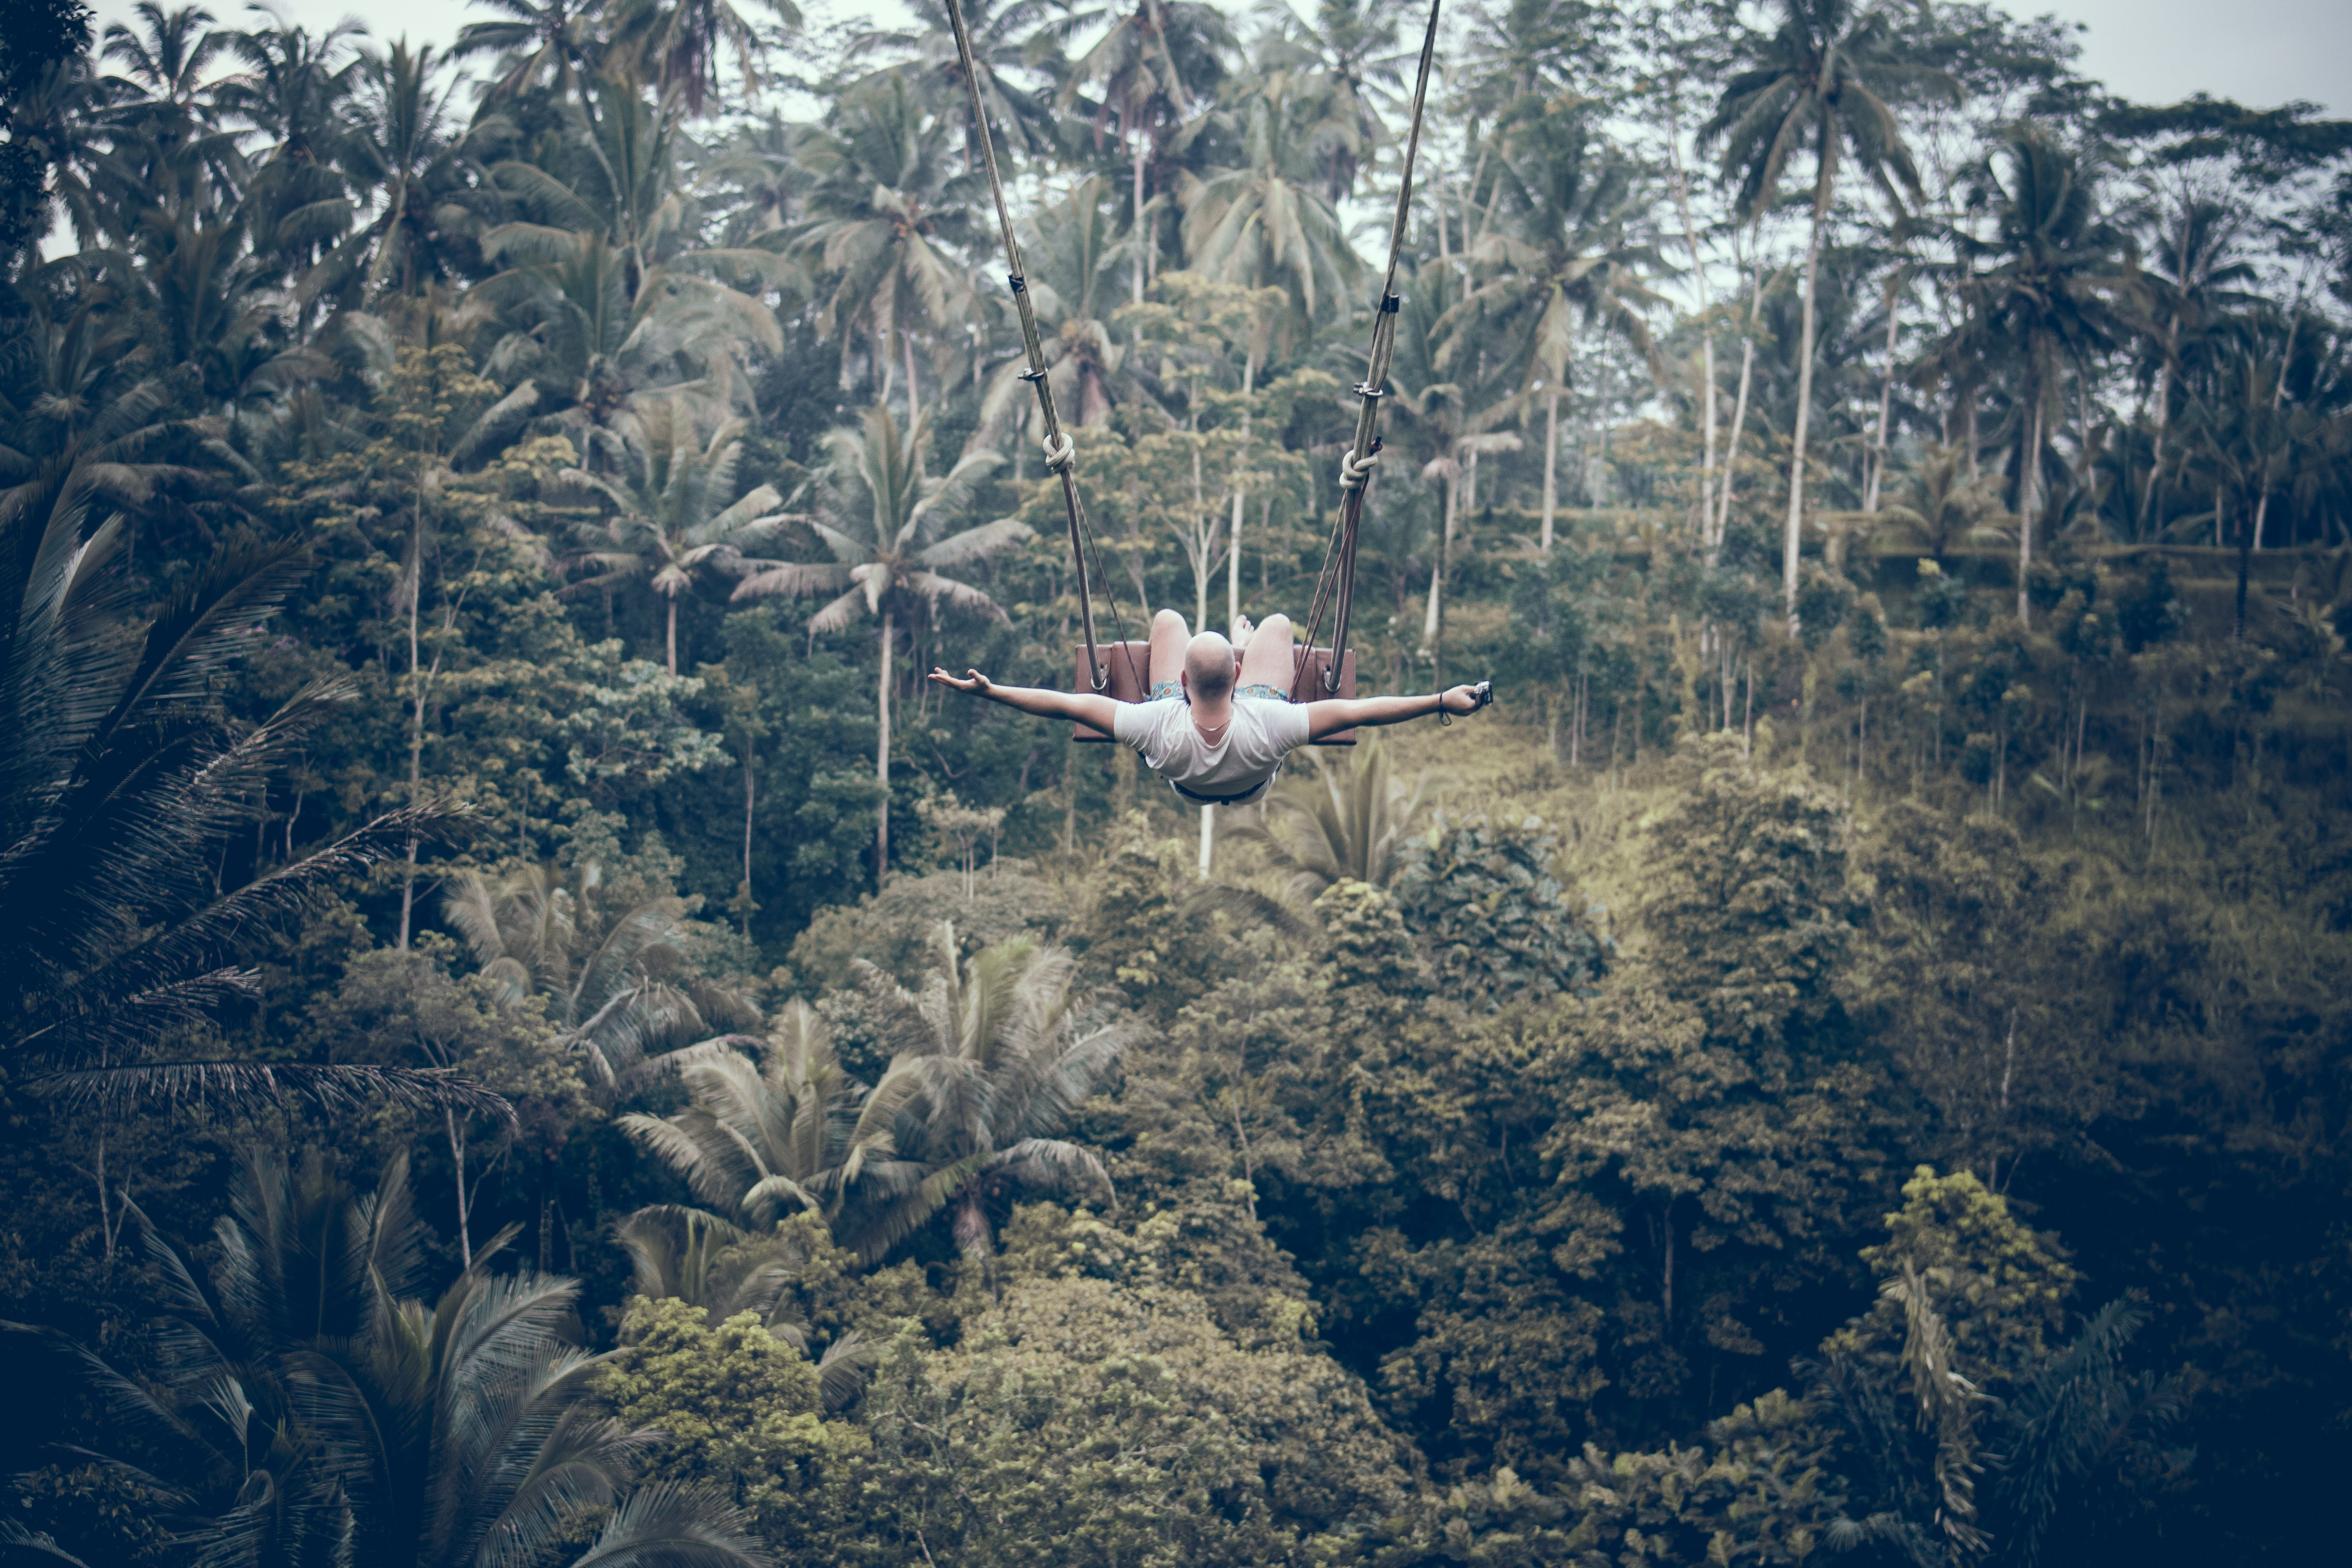 Man Using the Zip-lining on Top of Palm Trees